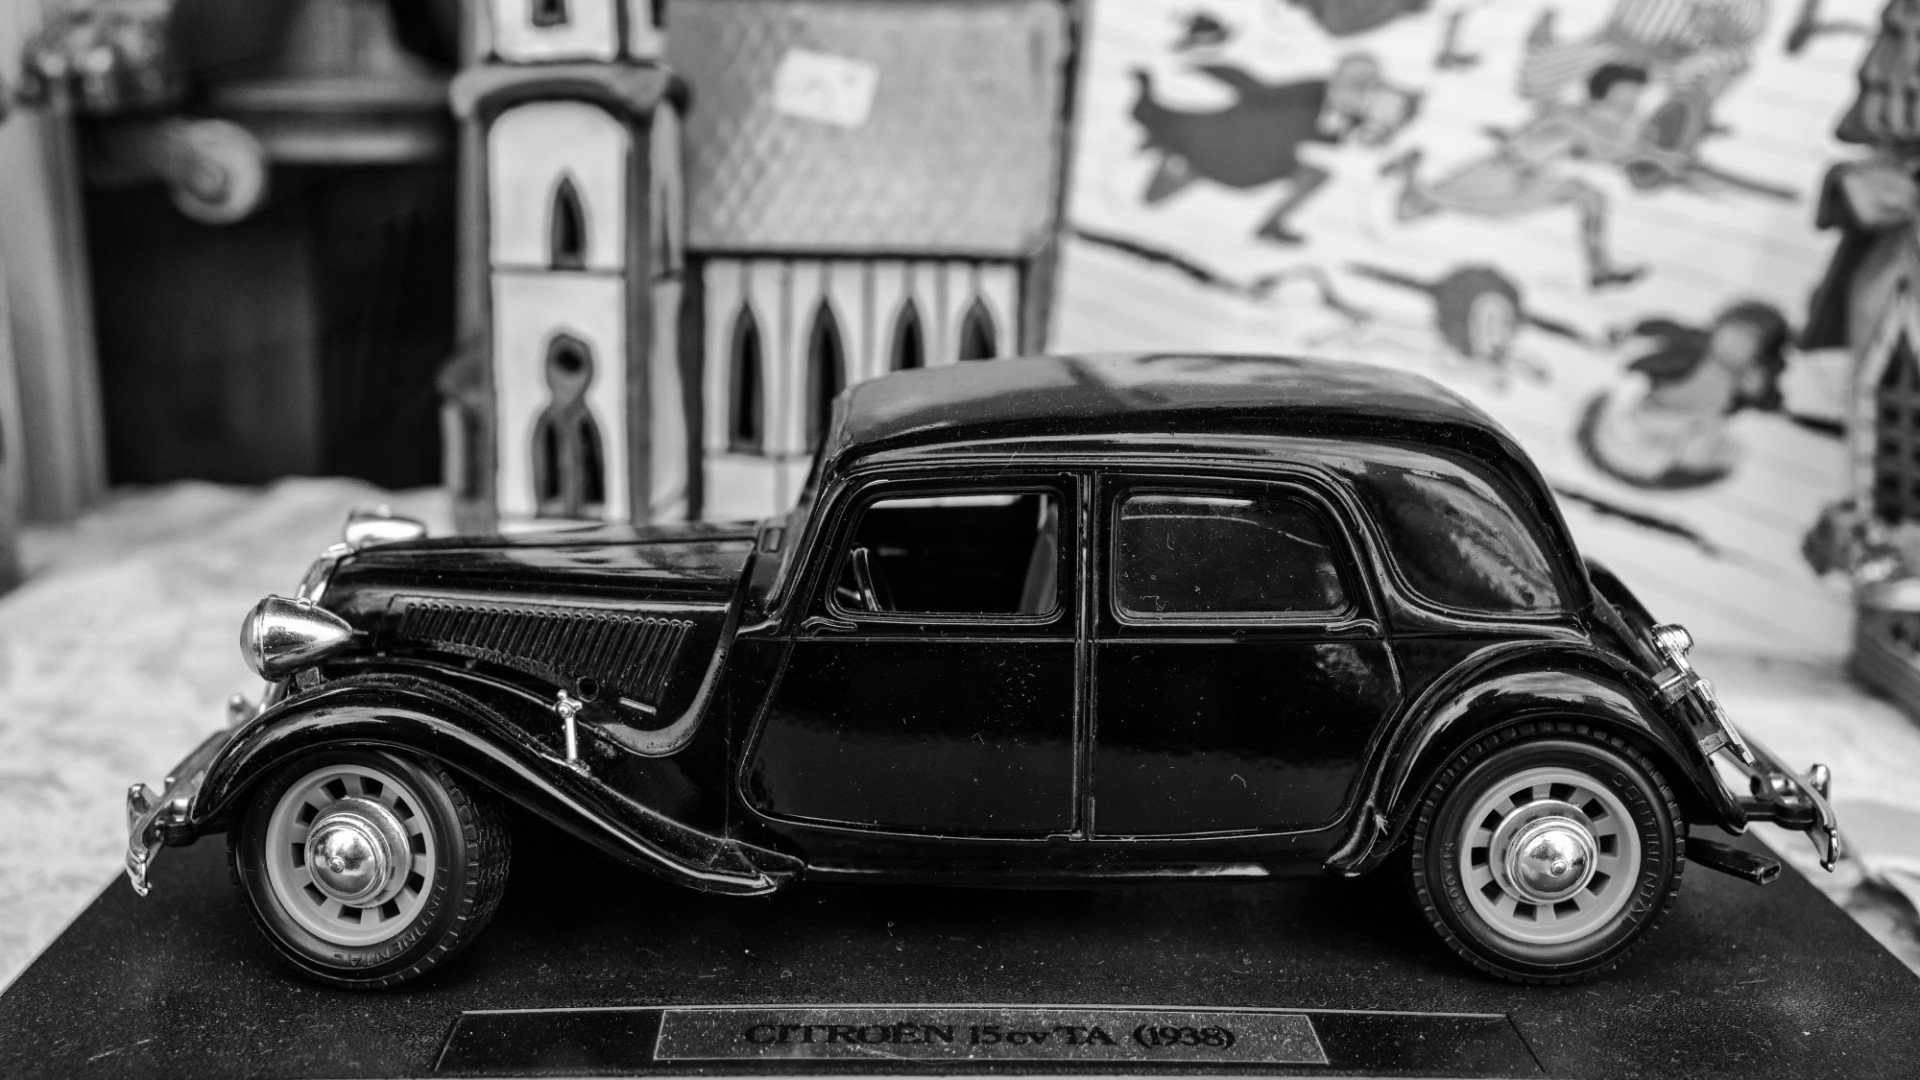 Model car in a window of an antiques shop